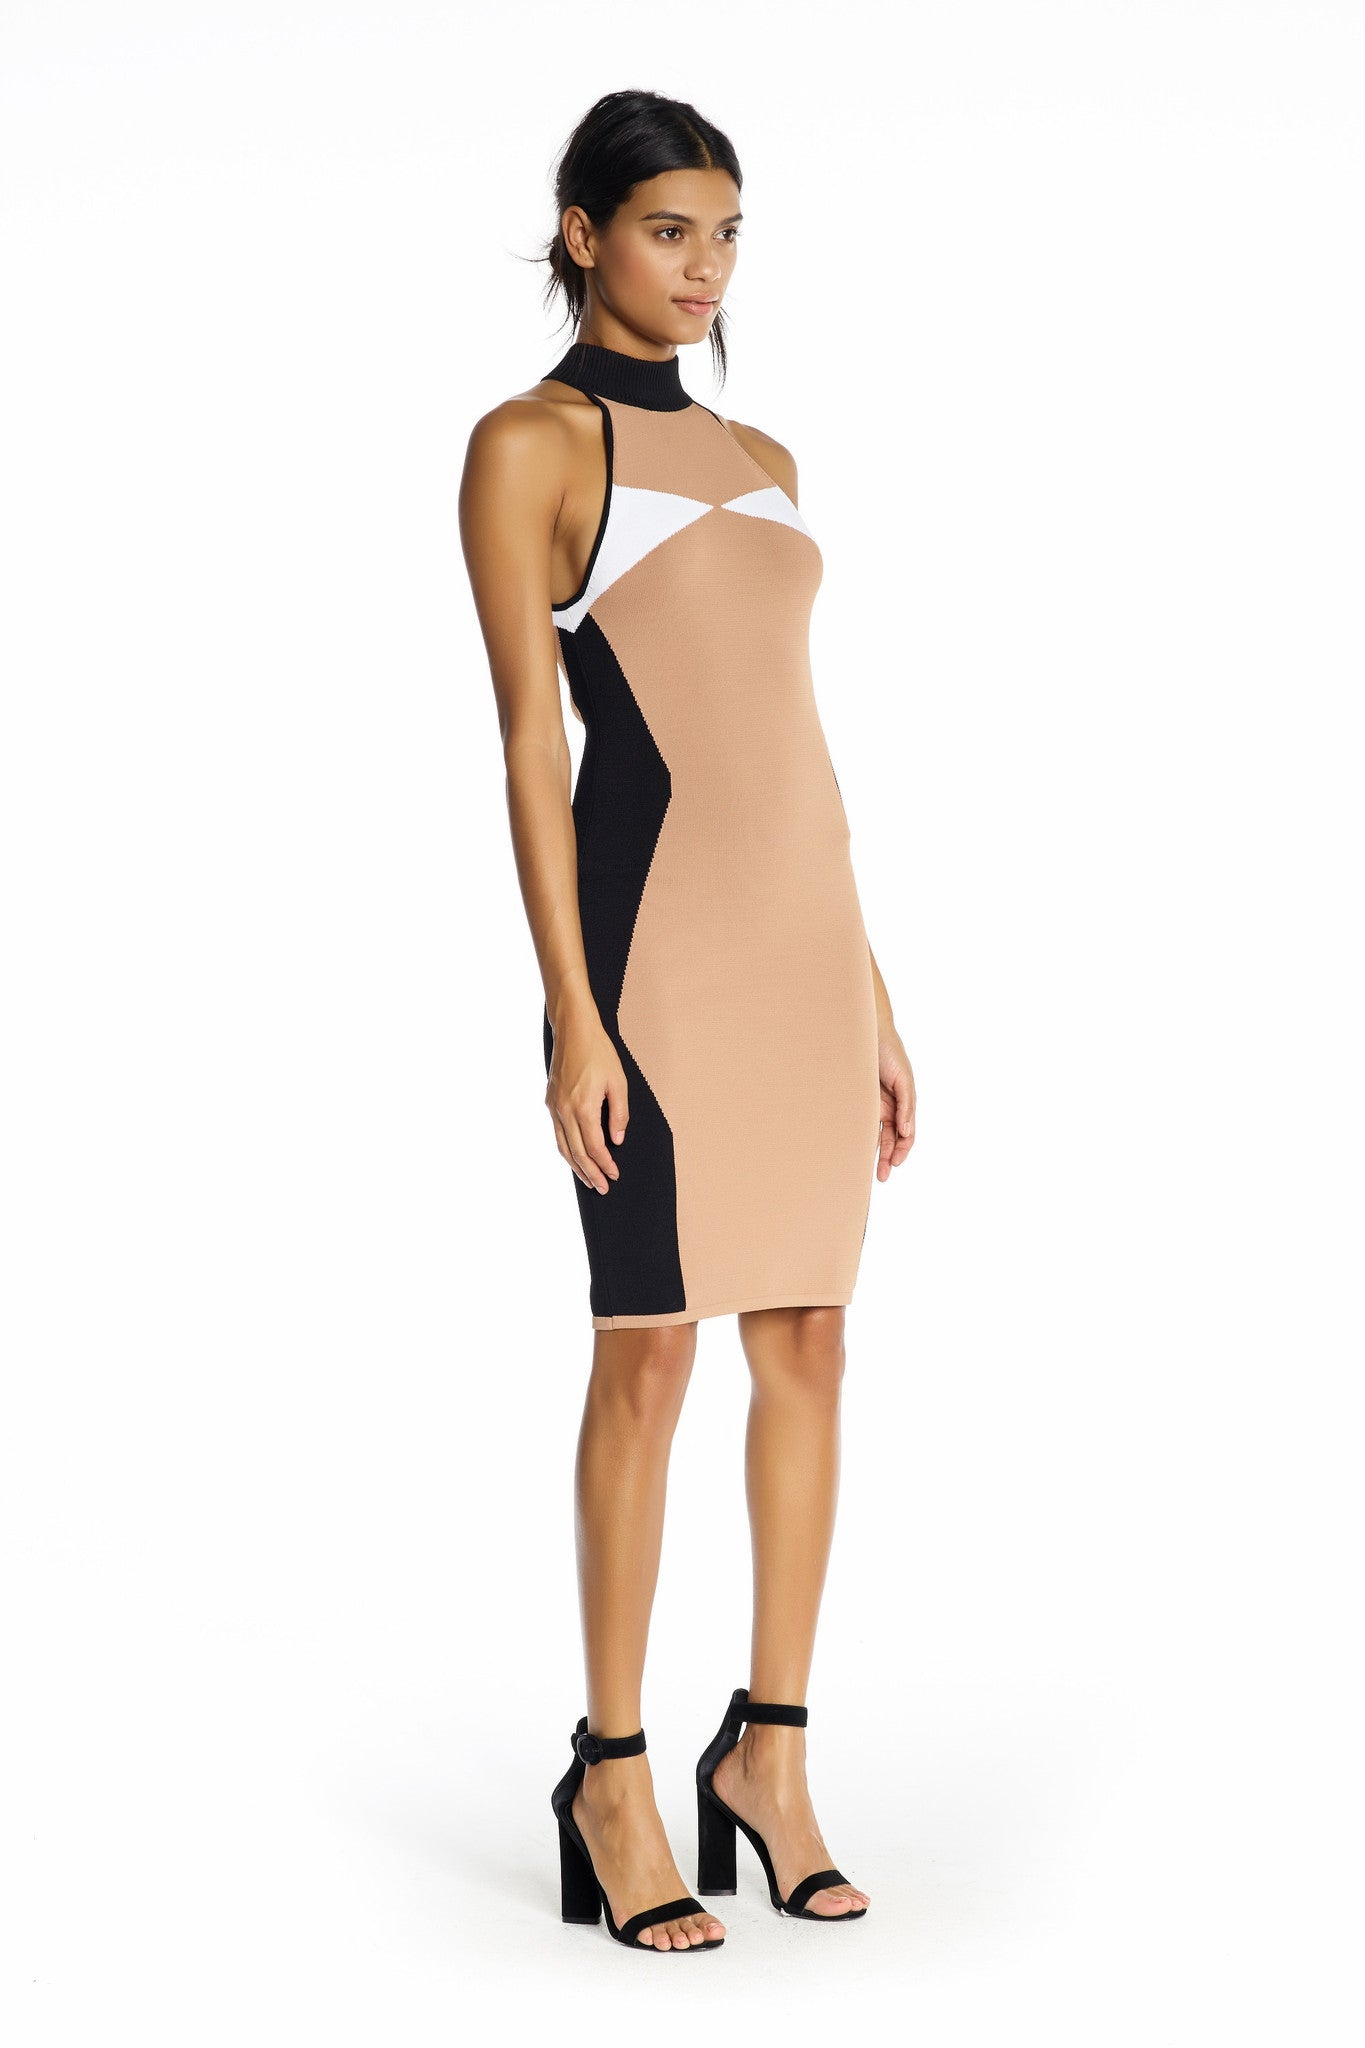 ILLUSION HALTER DRESS DRESSES by KENDALL + KYLIE